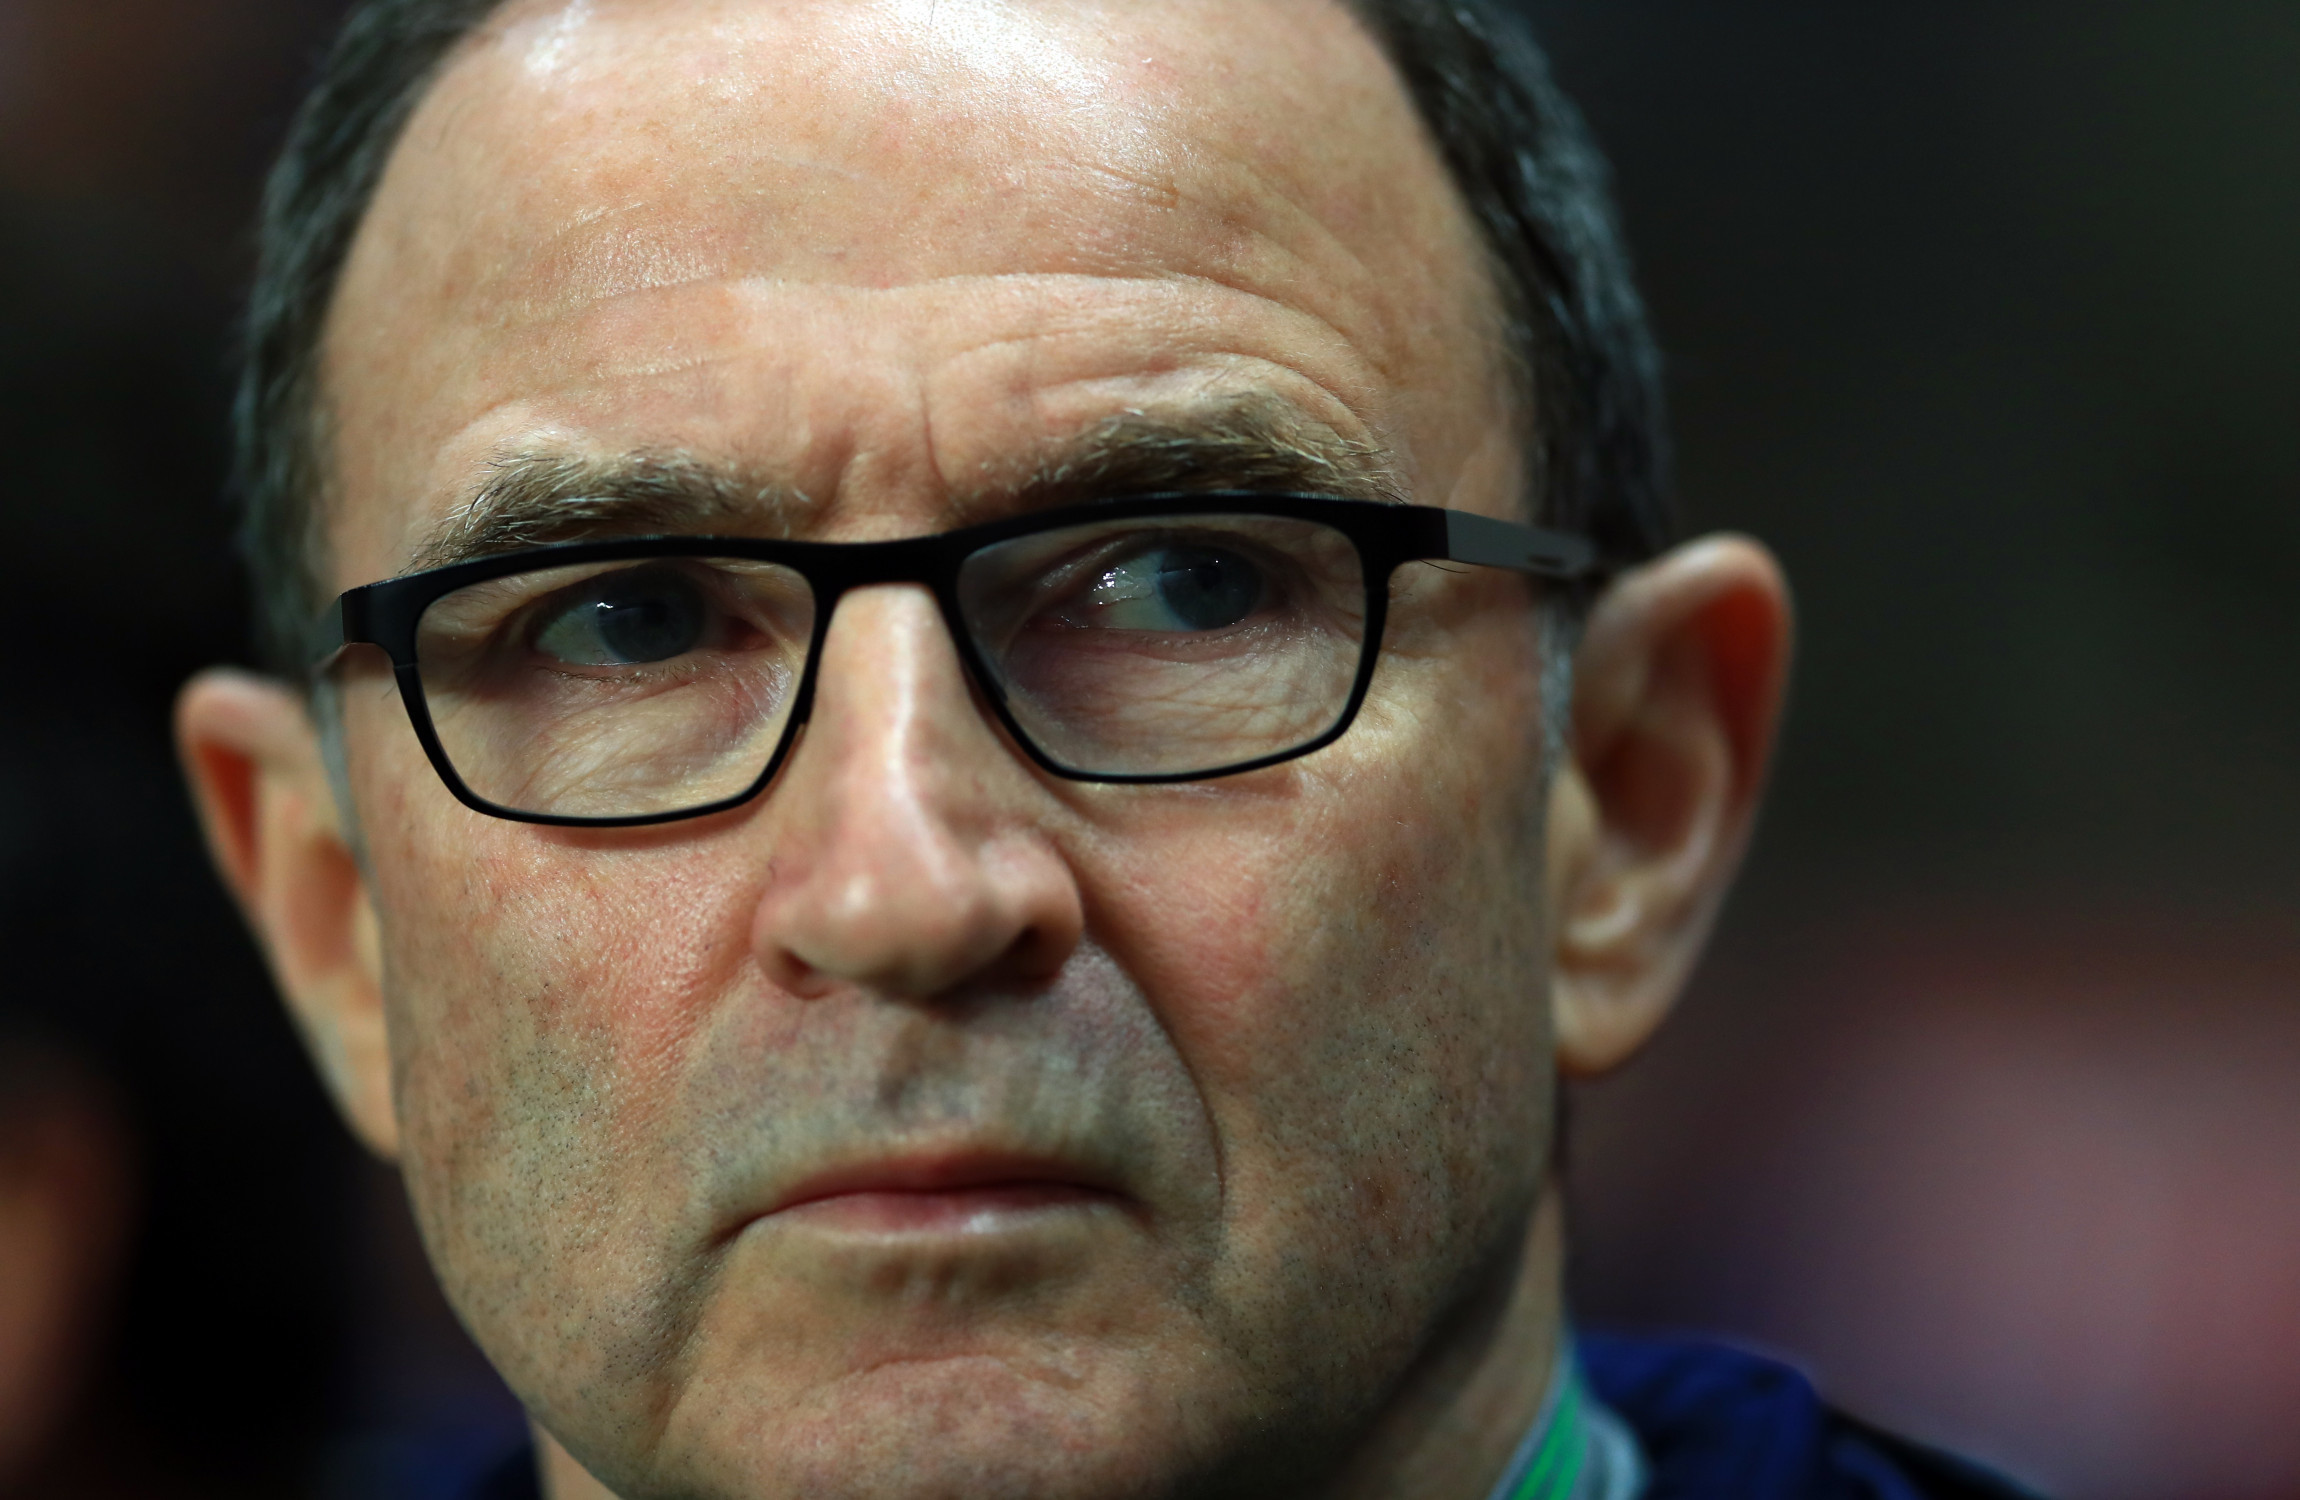 Stoke next manager: Martin O'Neill rejects Potters in another embarrassing twist